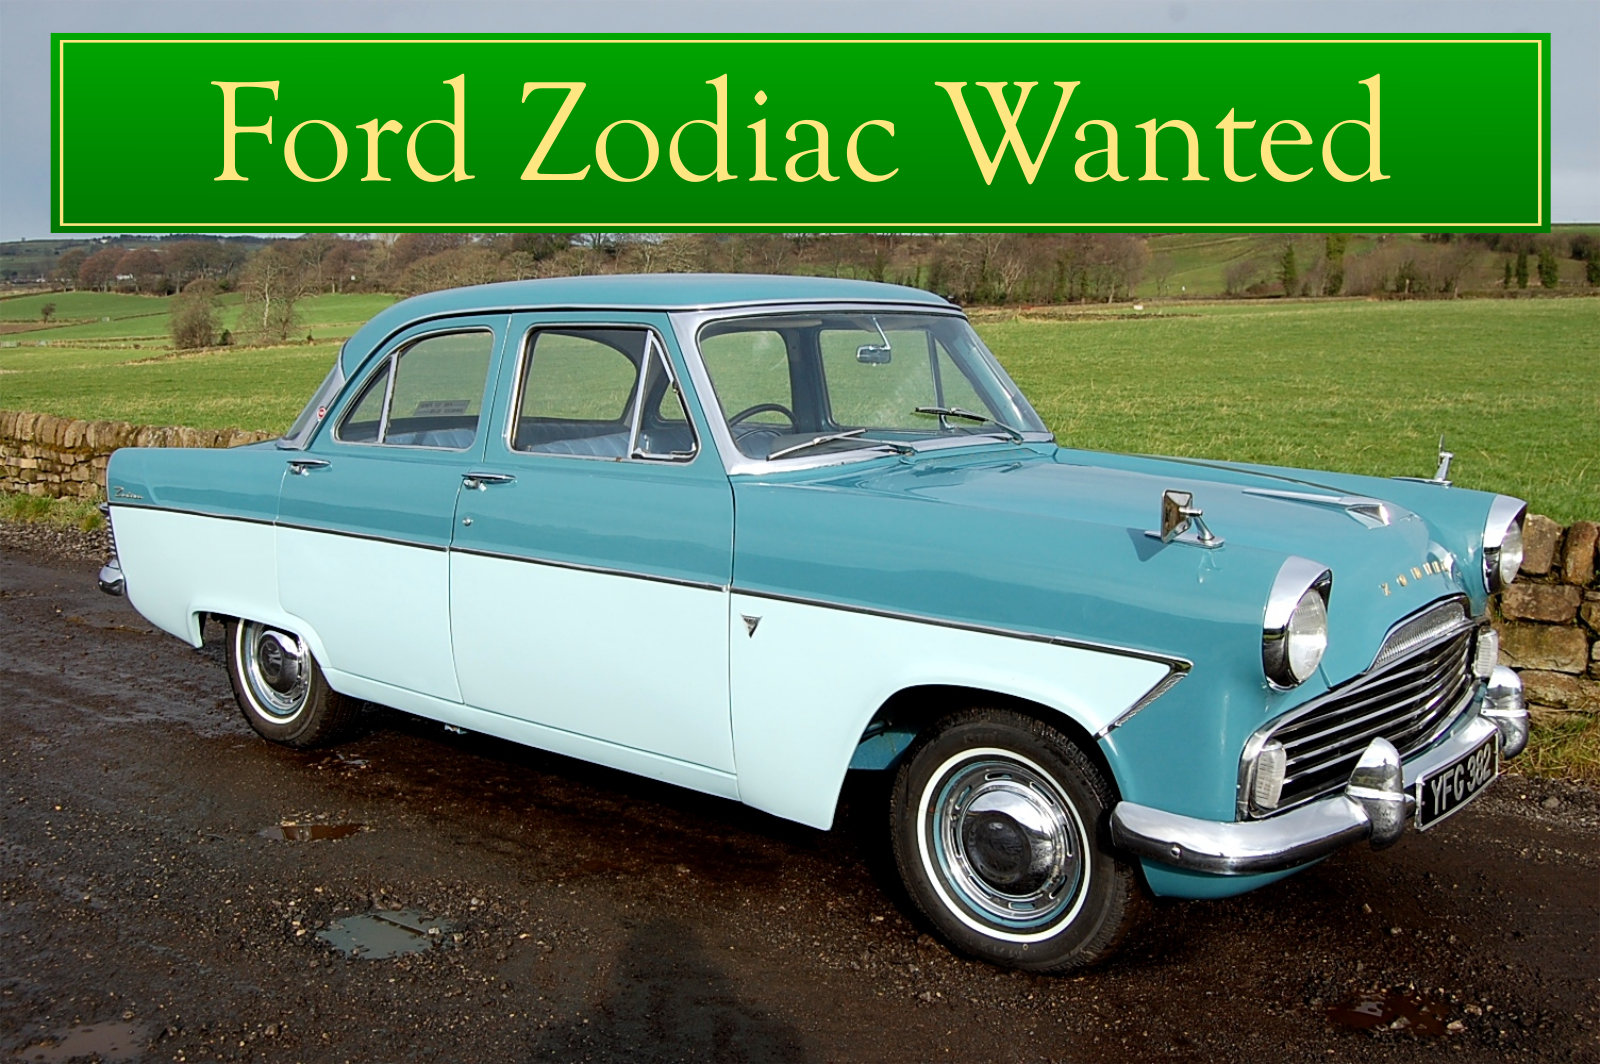 FORD ZODIAC MK1 WANTED, CLASSIC CARS WANTED, INSTANT PAYMENT Wanted (picture 2 of 6)